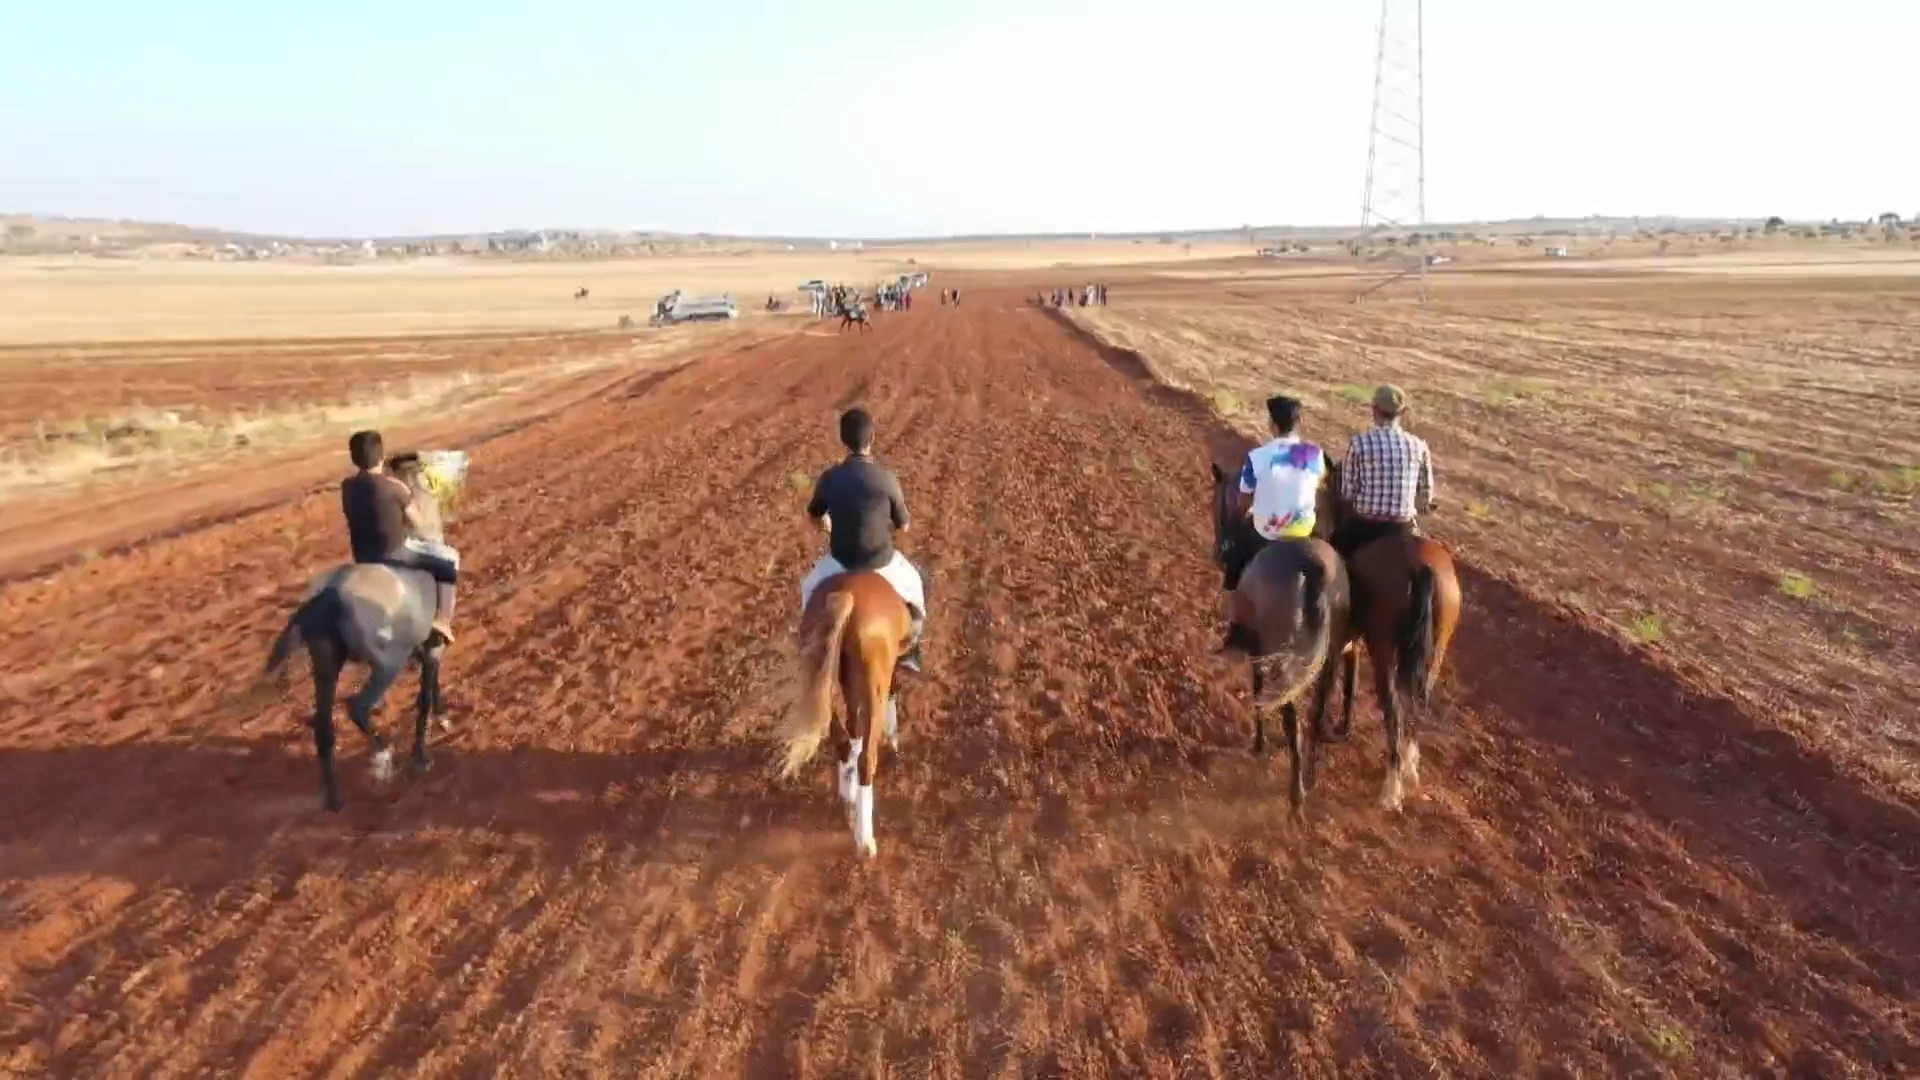 Syrians seek solace in ancient tradition of horse racing - channel 4